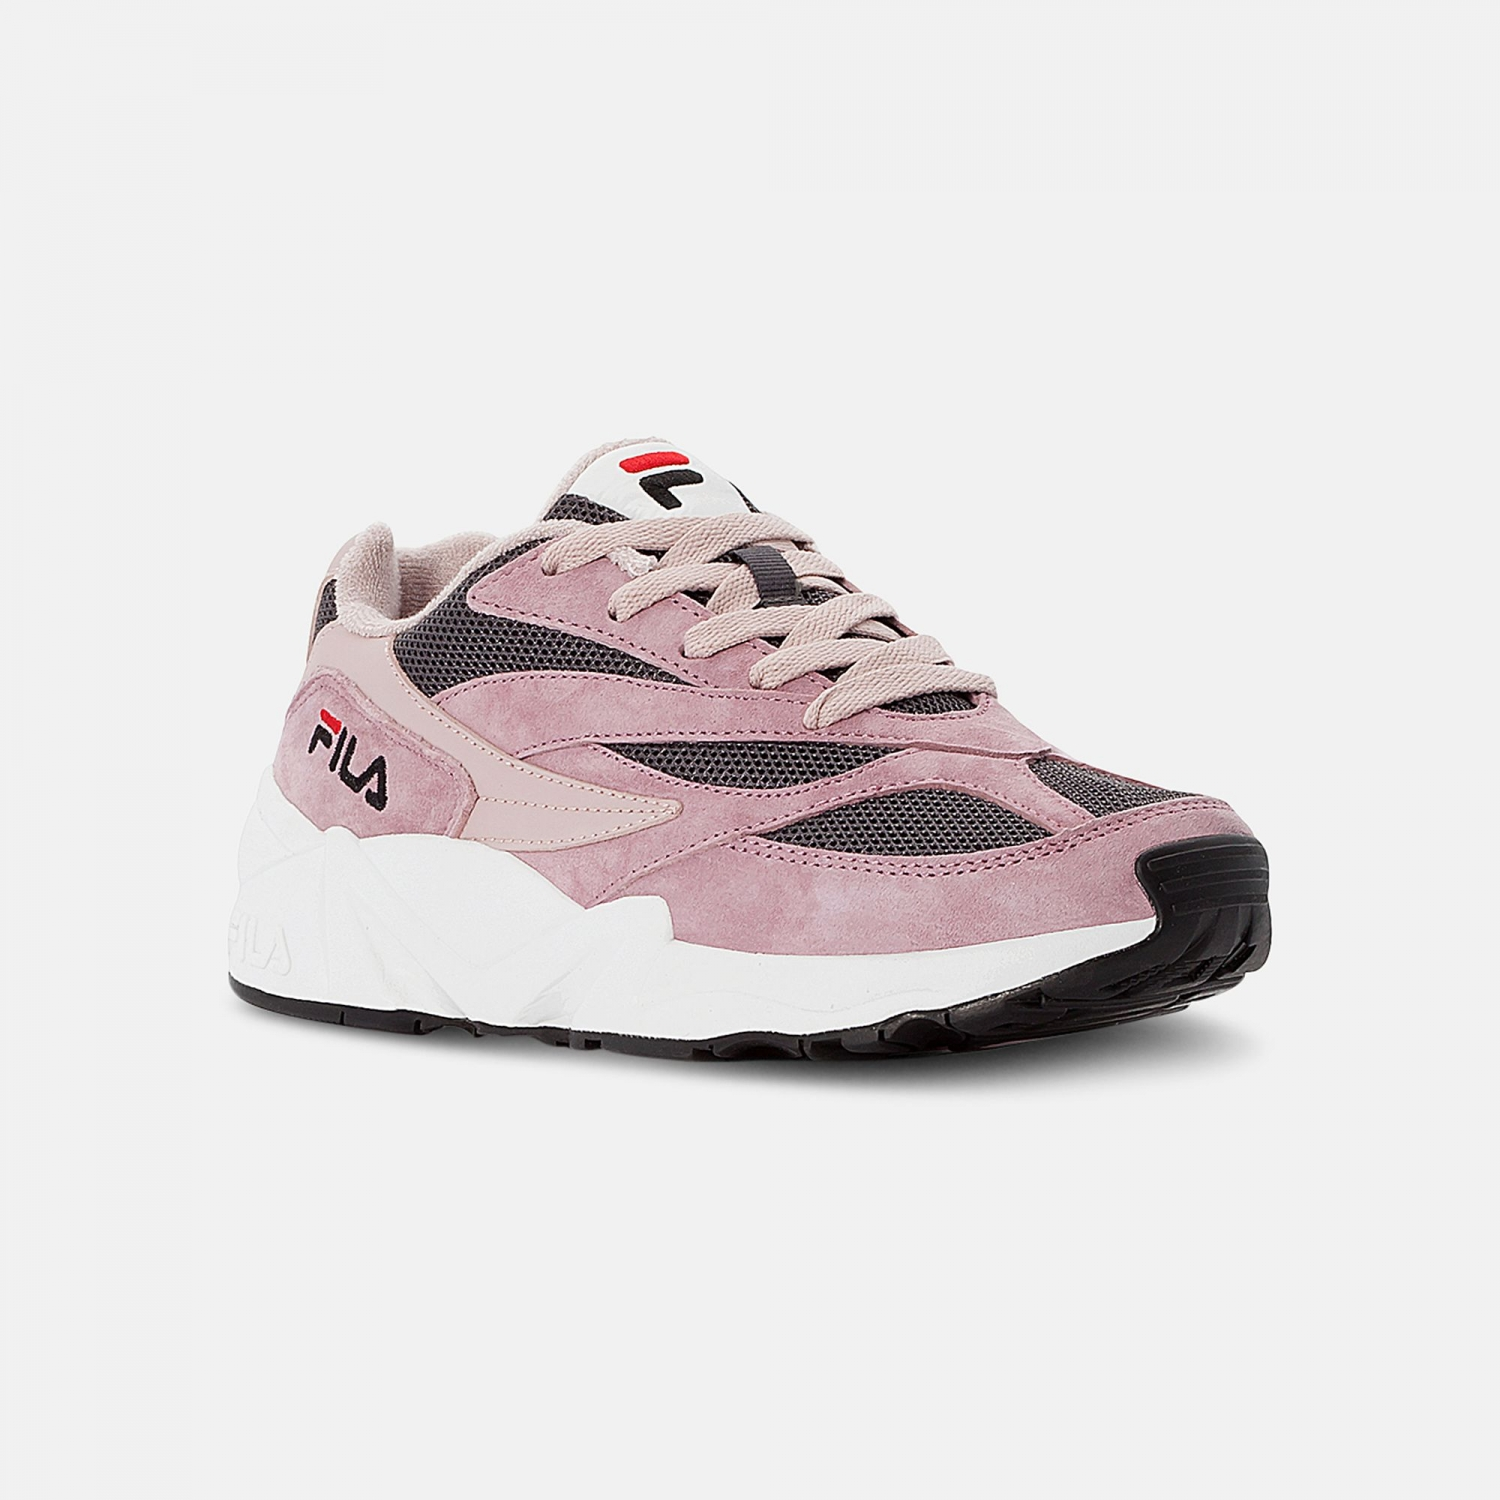 Fila V94M Low Wmn lilas-dark-shadow Bild 2